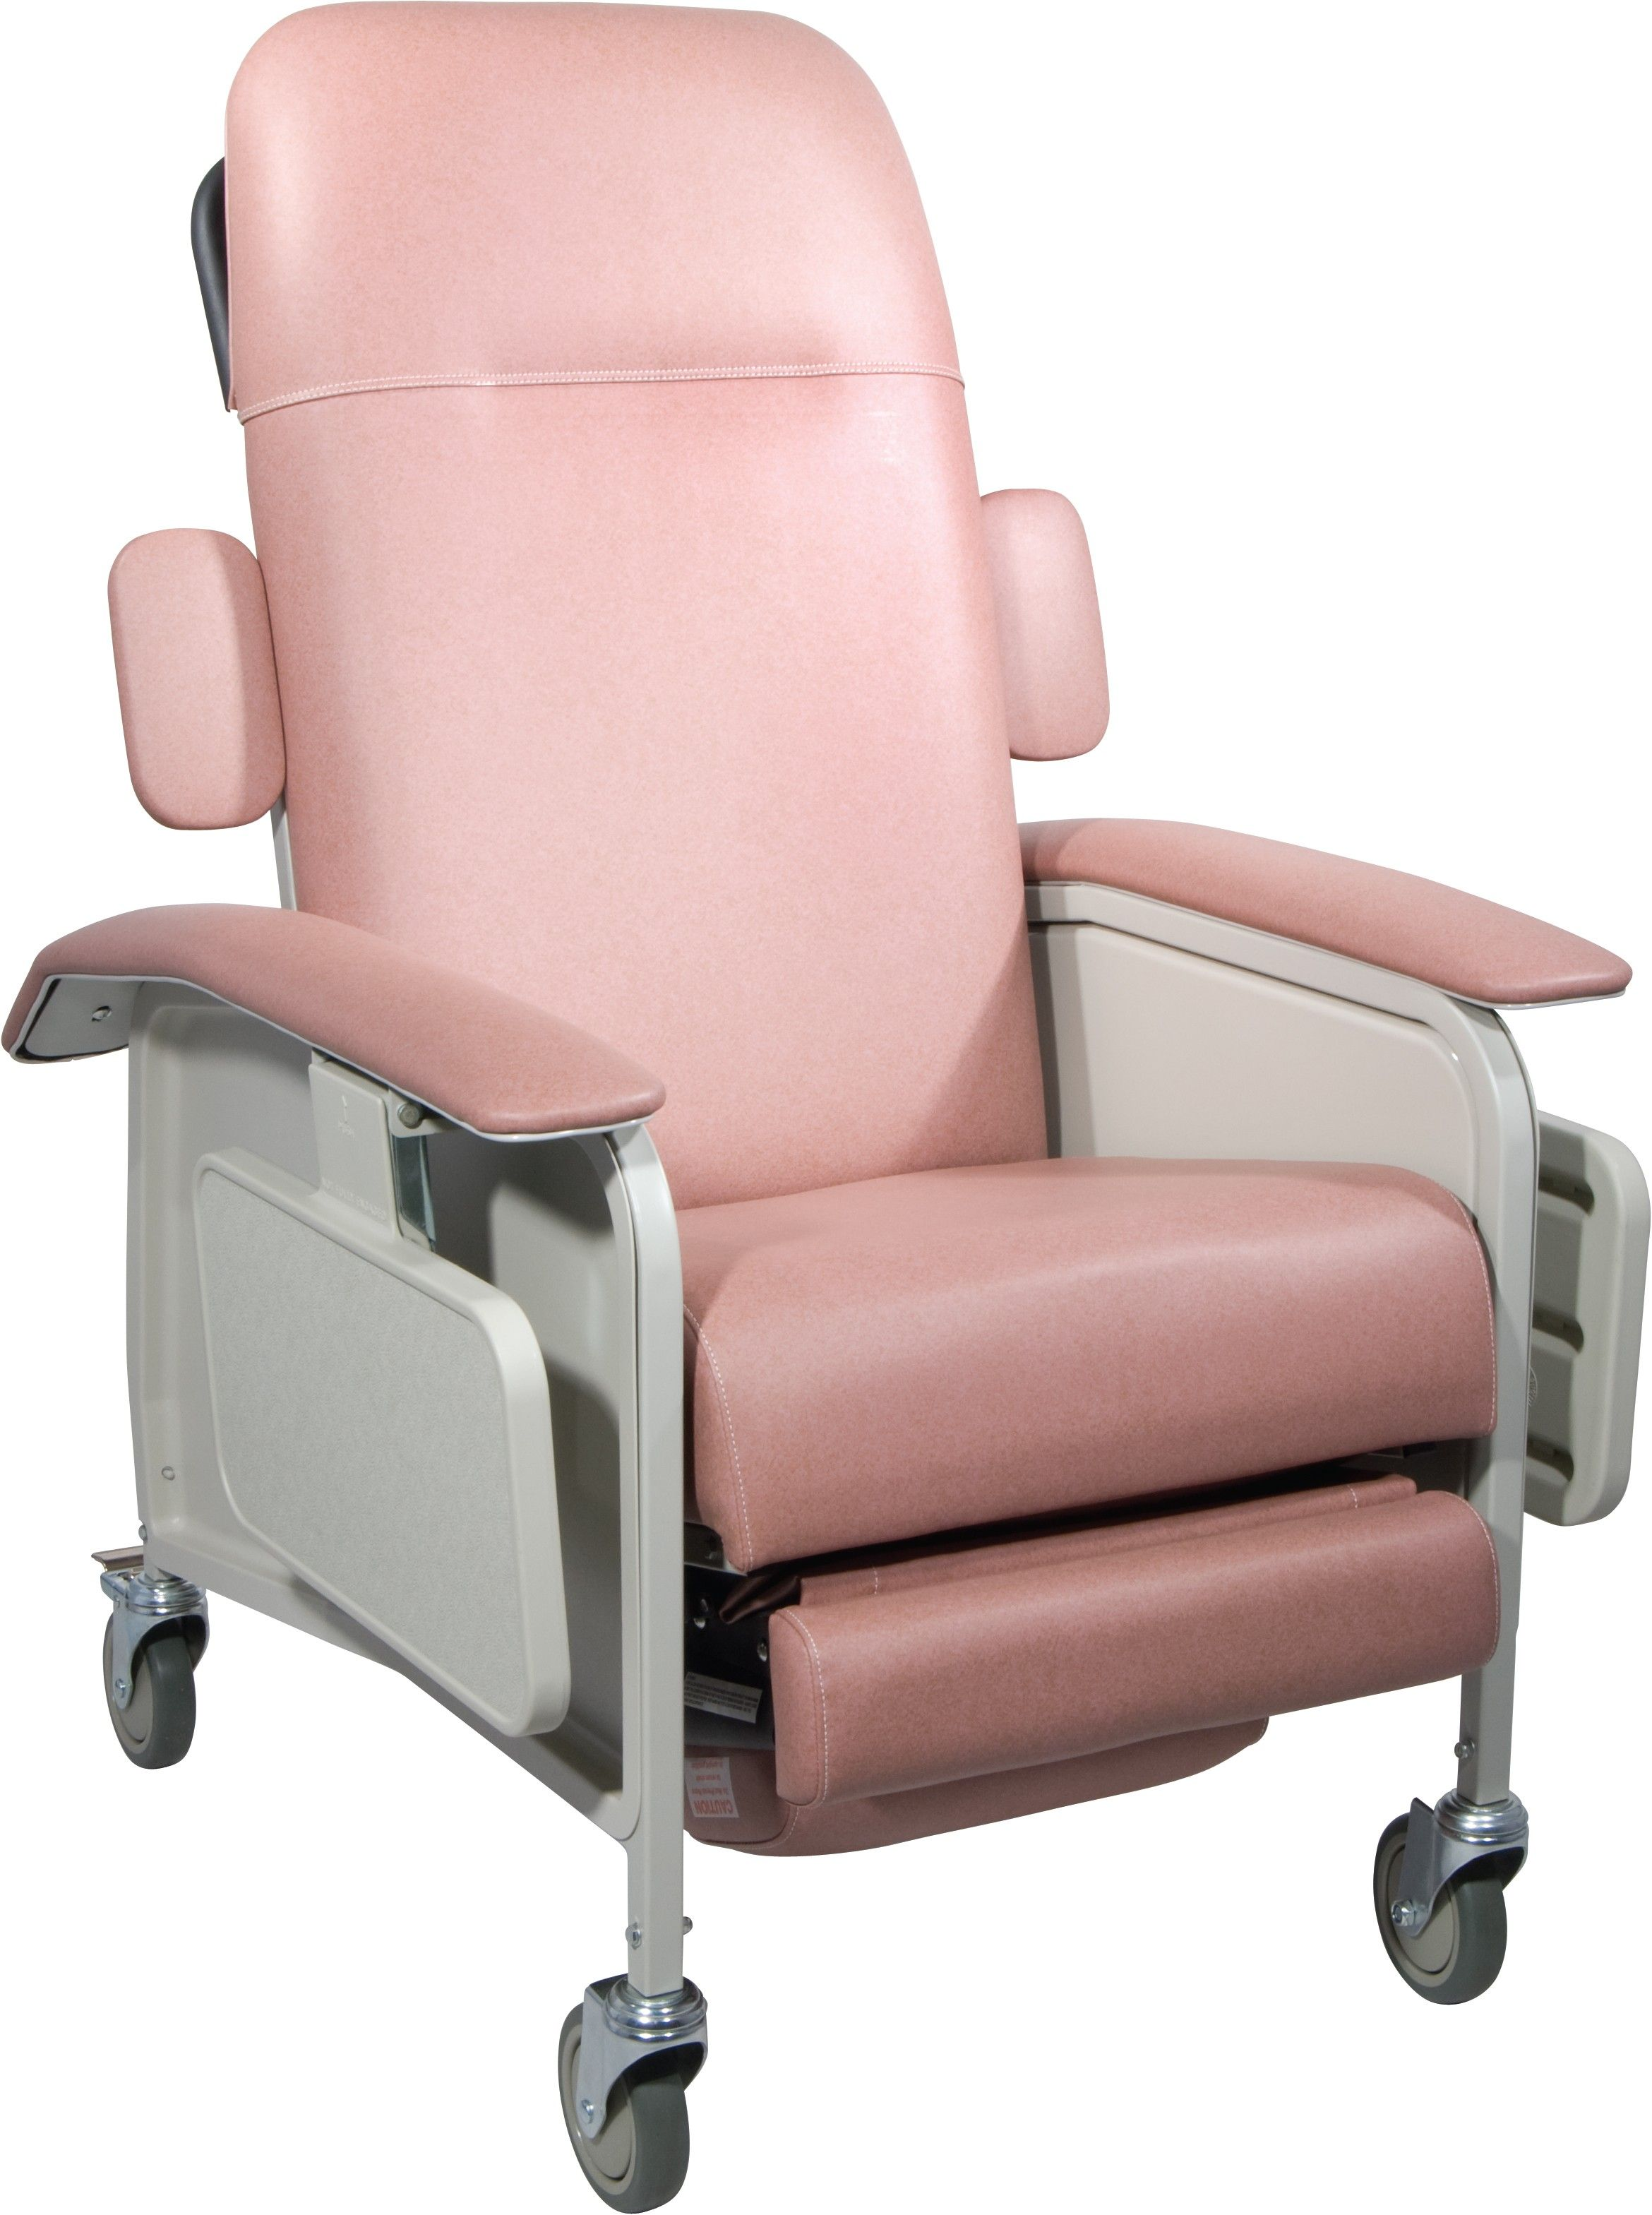 This Clinical Care Geri Chair Recliner Is Excellent For Use In Blood Collection Dialysis Respiratory And Cardiac Care It Can Recliner Chair Recliner Chair